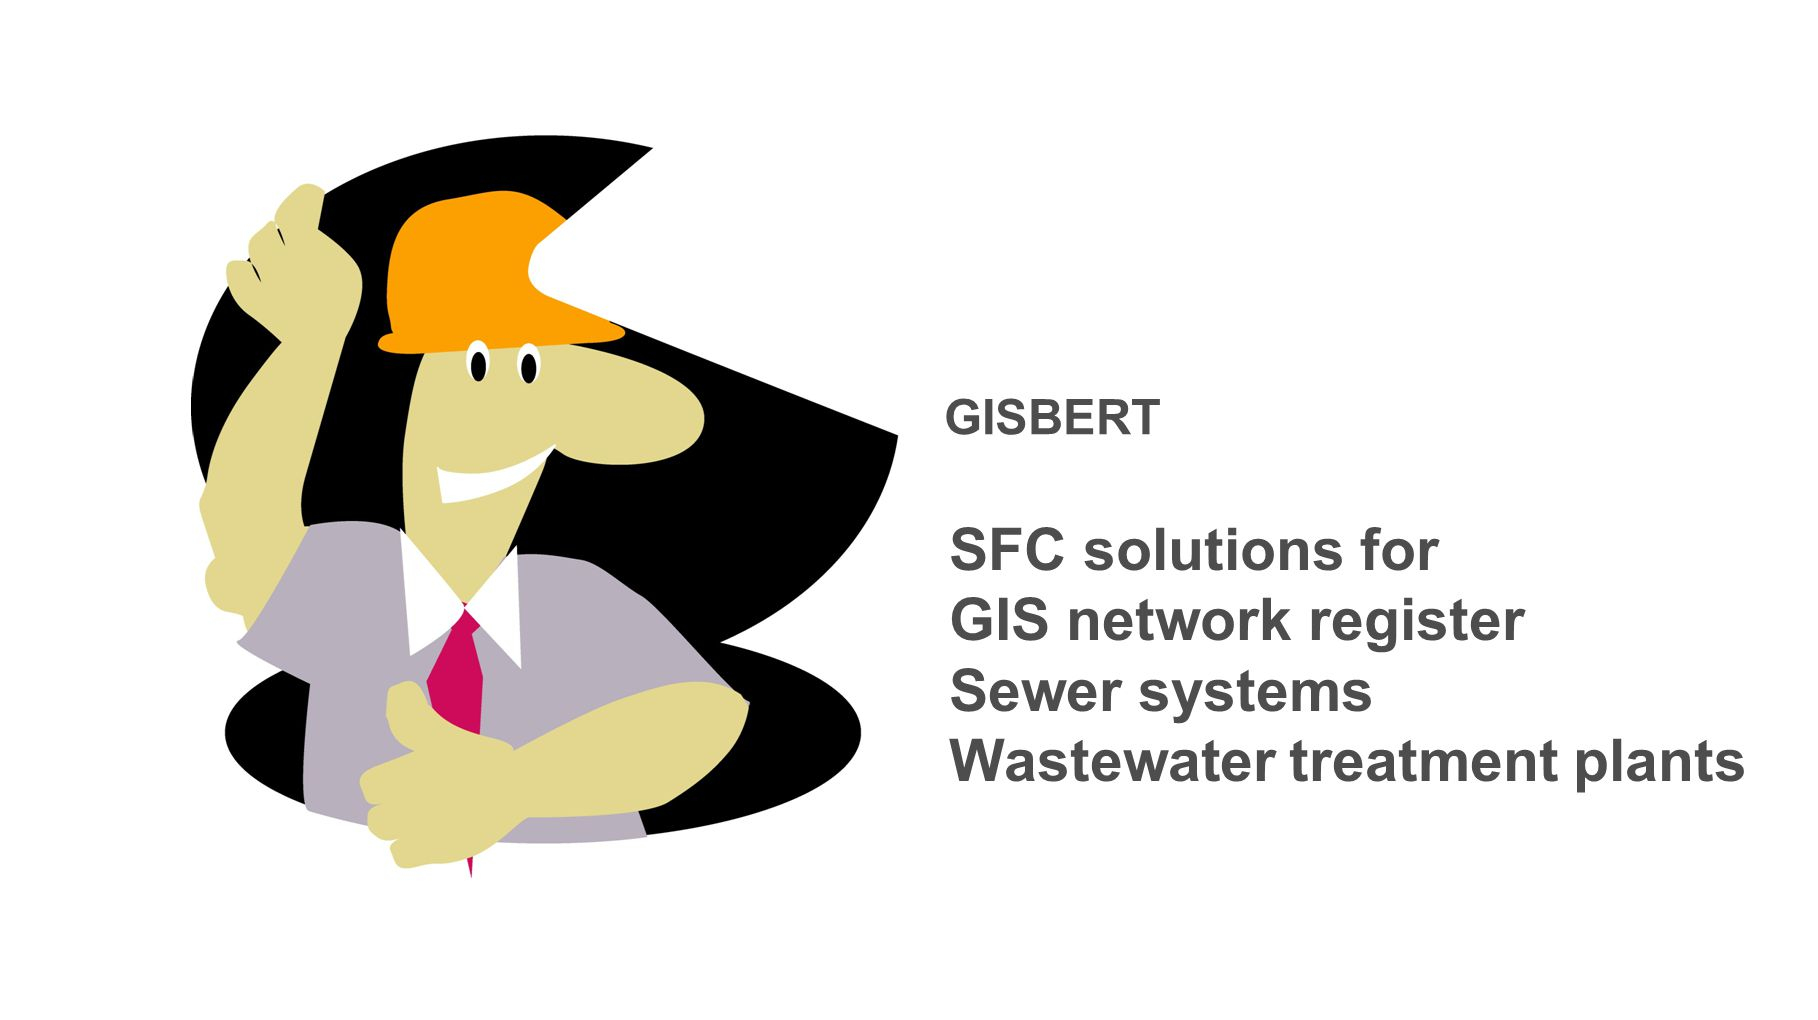 GISBERT's goal is client independence.